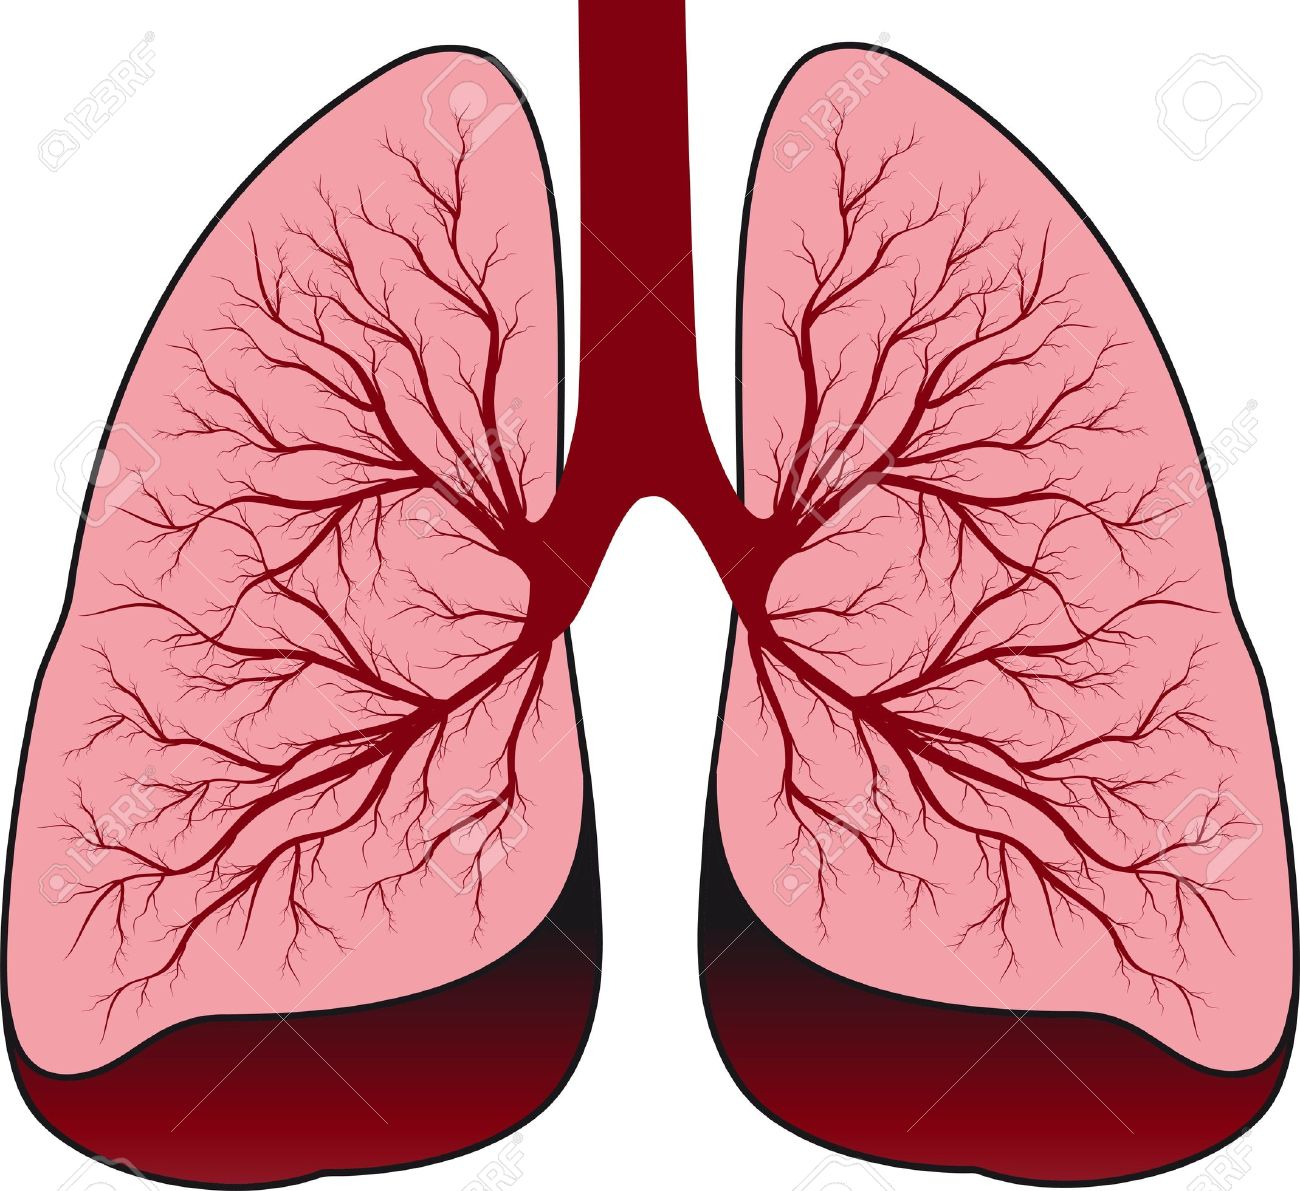 Clipart lung clip free download Lungs clipart detail - 67 transparent clip arts, images and pictures ... clip free download